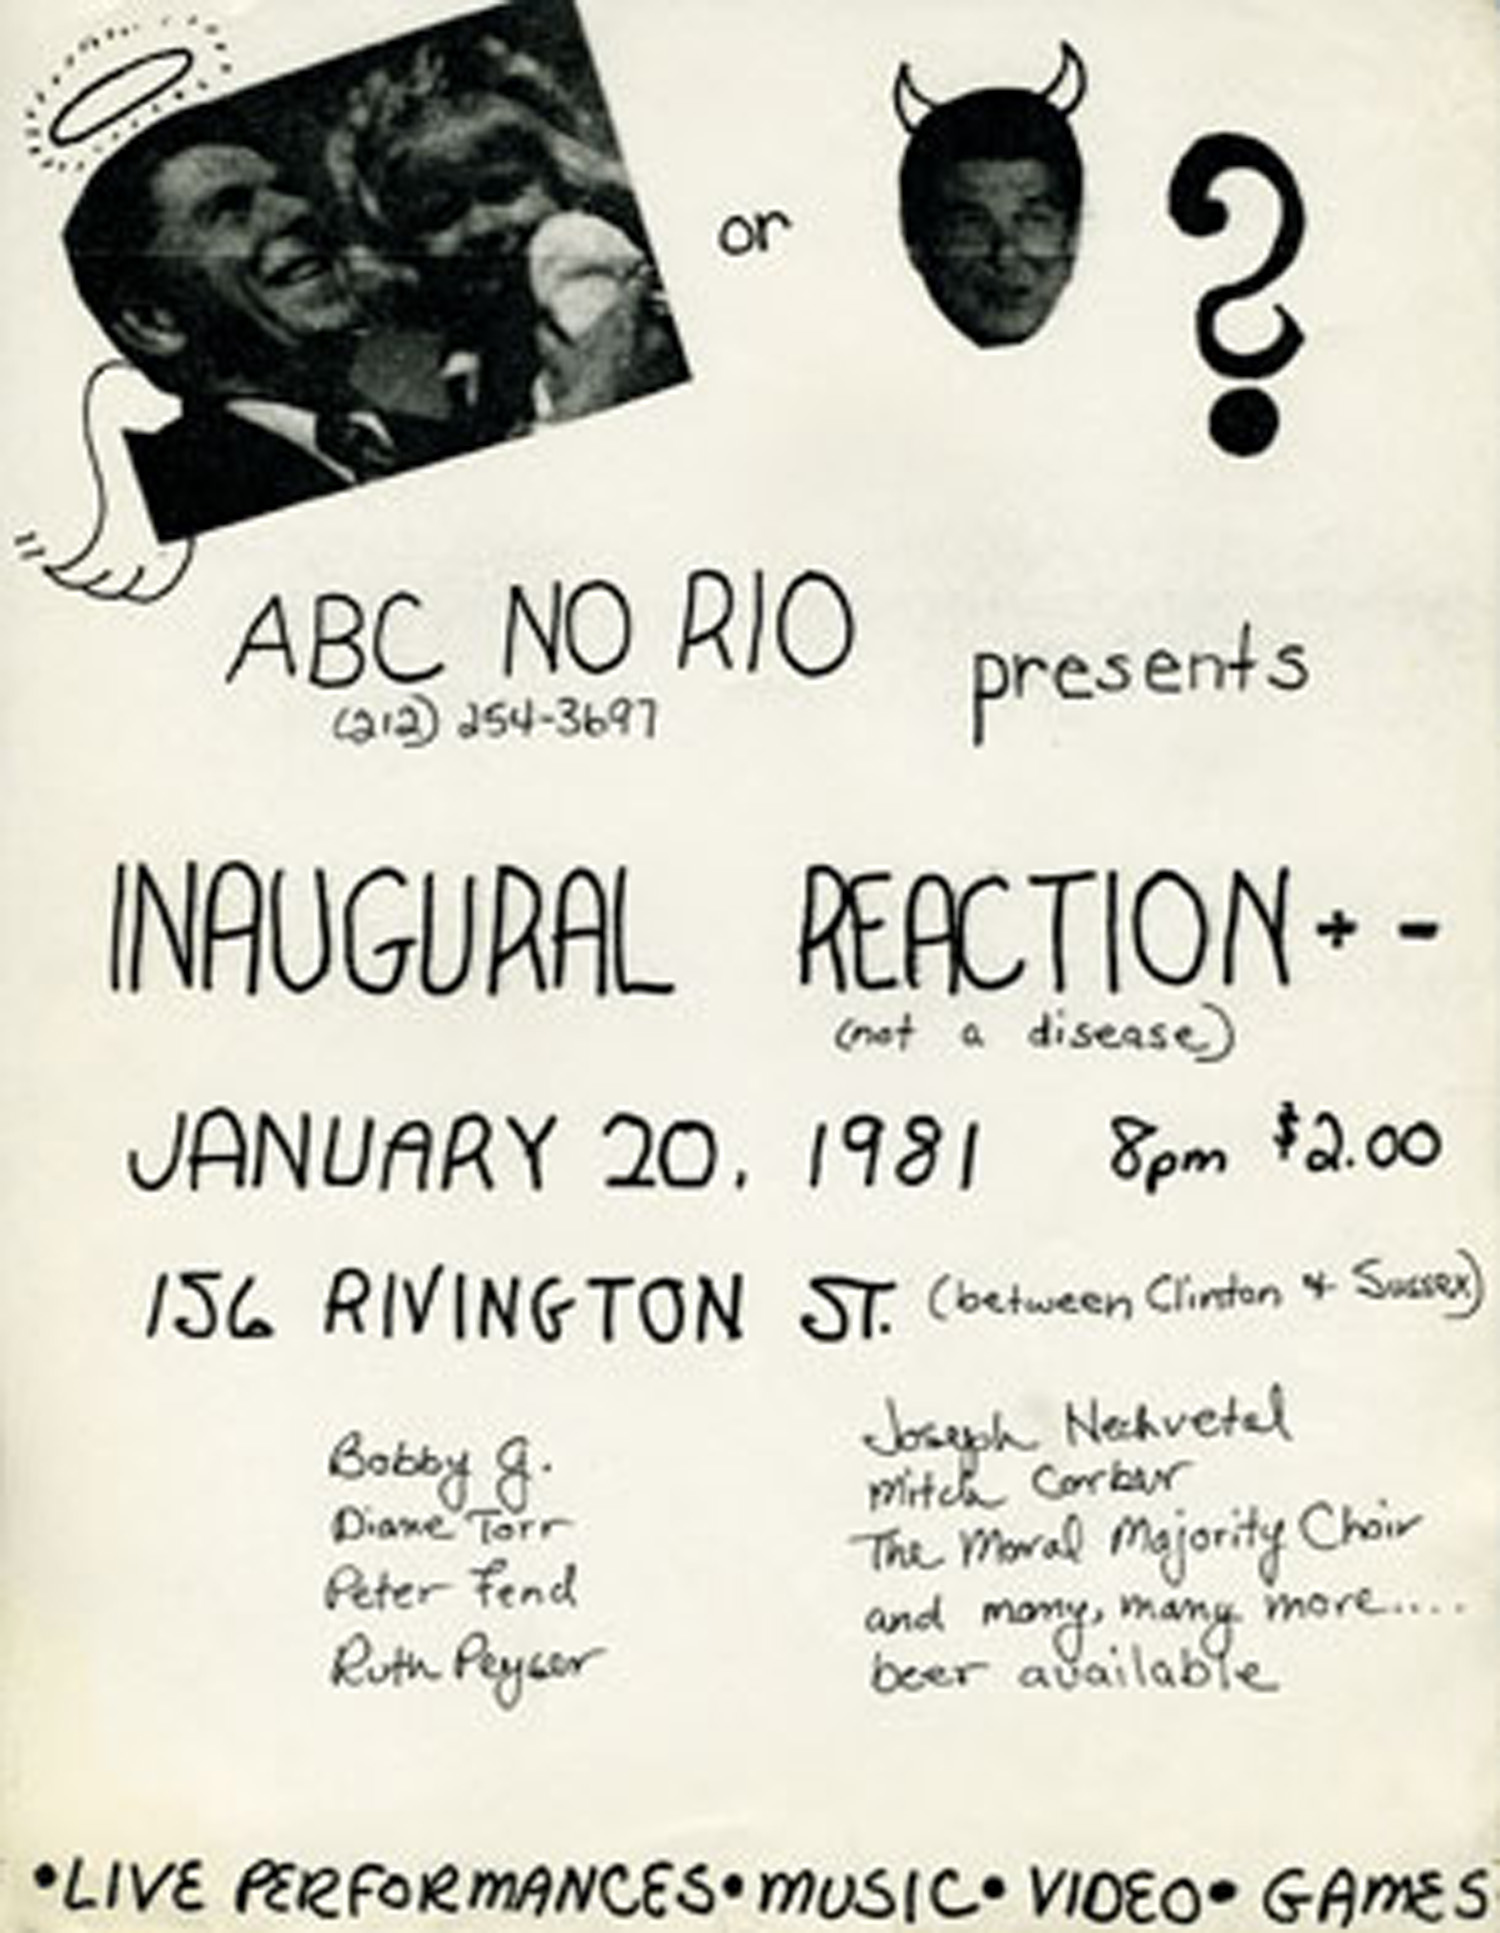 Inaugural Reaction poster